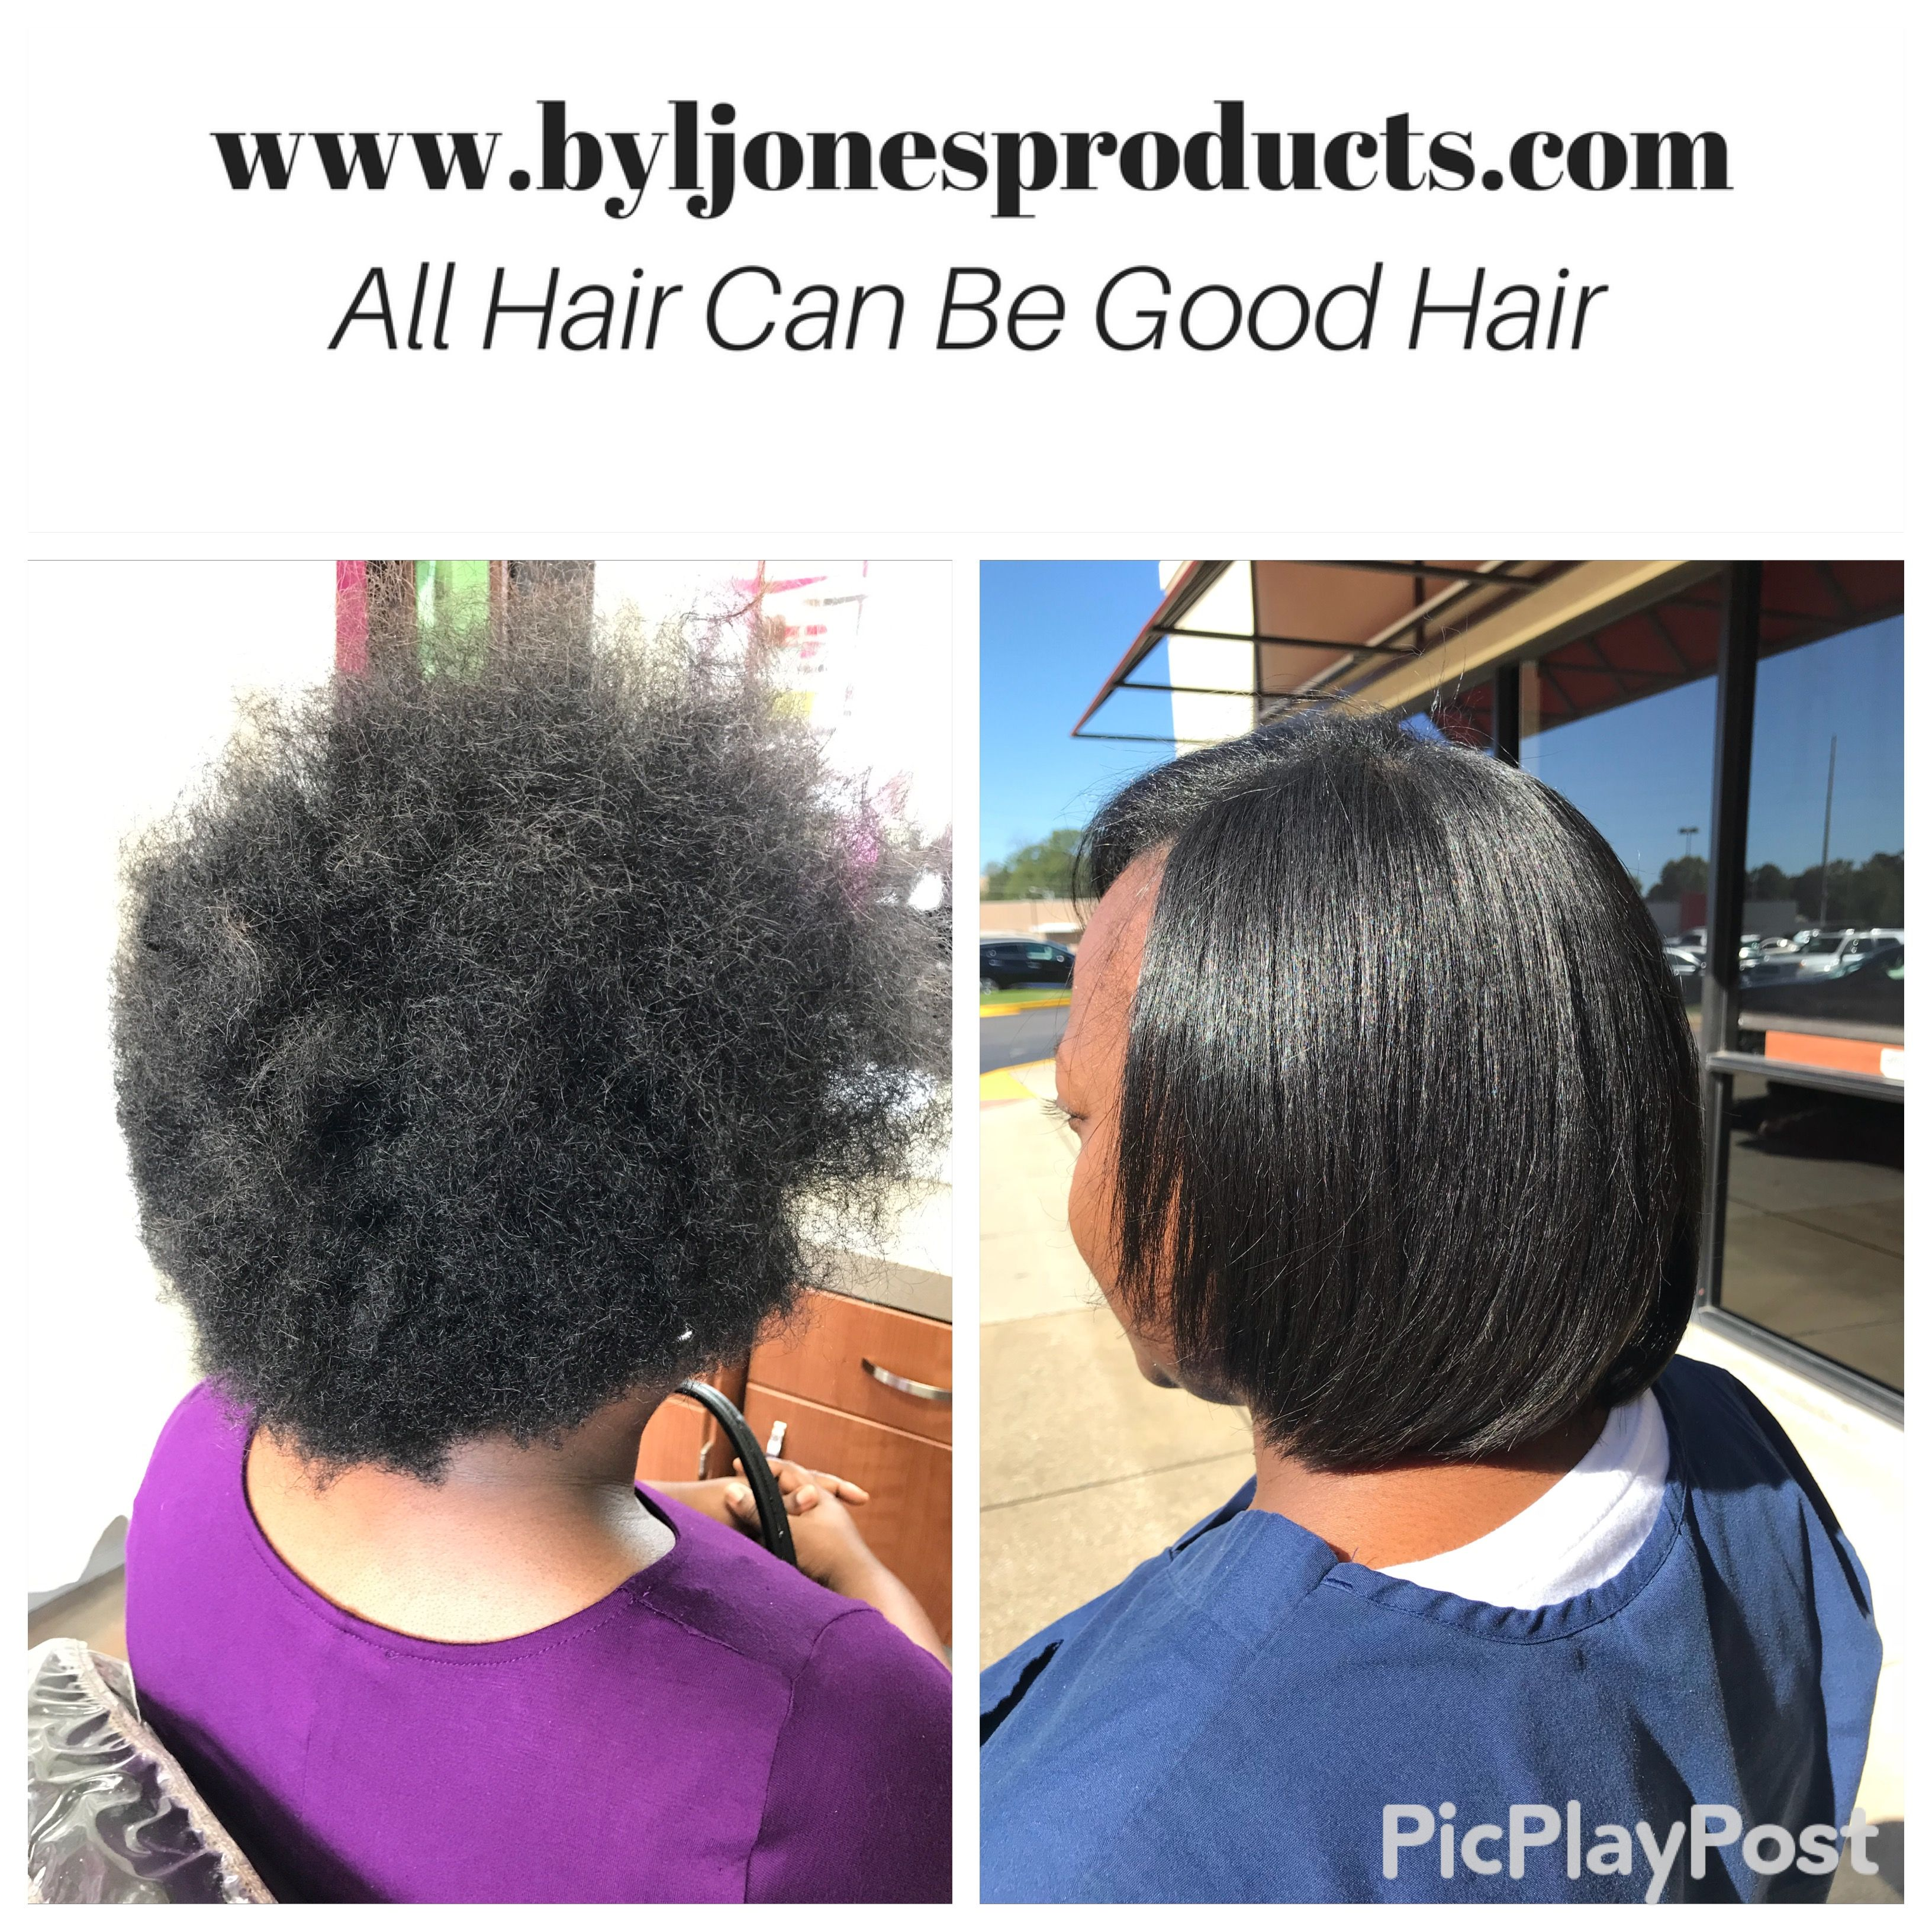 Before And After Brazilian Blowout On Natural Hair Maintained Using By L Jones Products Www Byljone Natural Hair Blowout Natural Hair Styles Cool Hairstyles